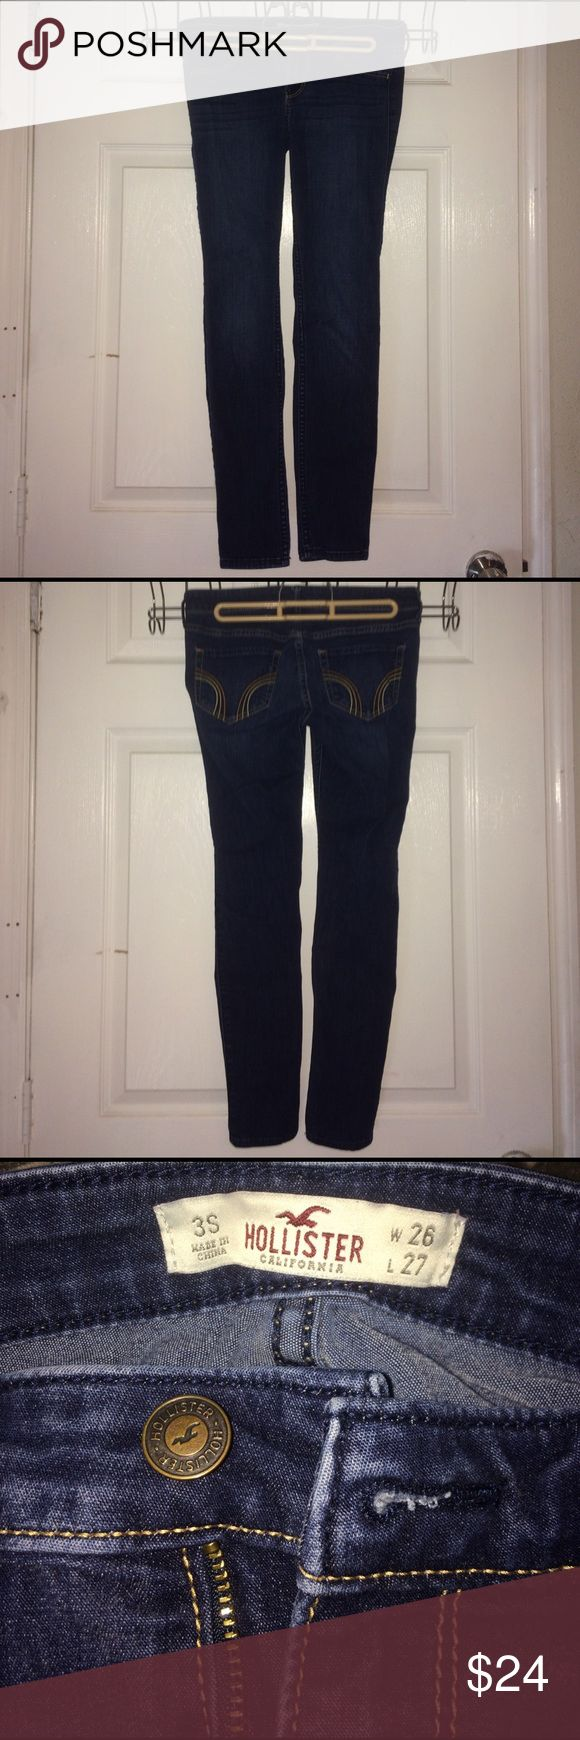 Hollister Women's Dark Wash Super Skinny Jeans These low-rise super skinny jeans from Hollister almost feel like jeggings! They are a great pair of dark wash jeans from Hollister. They have been worn multiple times, but are still in good shape! They are a size 3 Short. Hollister Pants Skinny